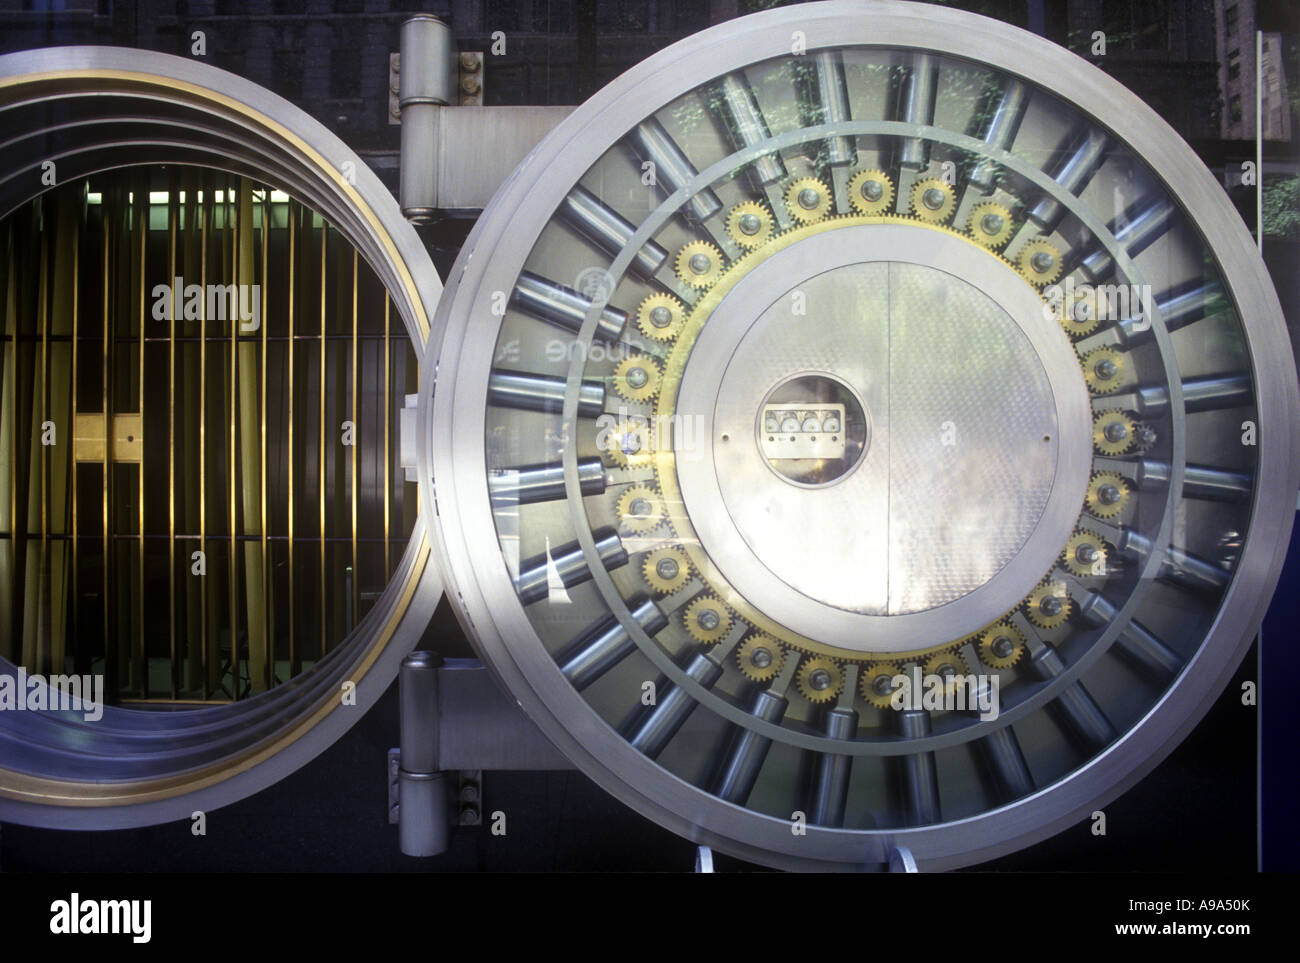 OPEN BANK VAULT SAFE DOOR - Stock Image